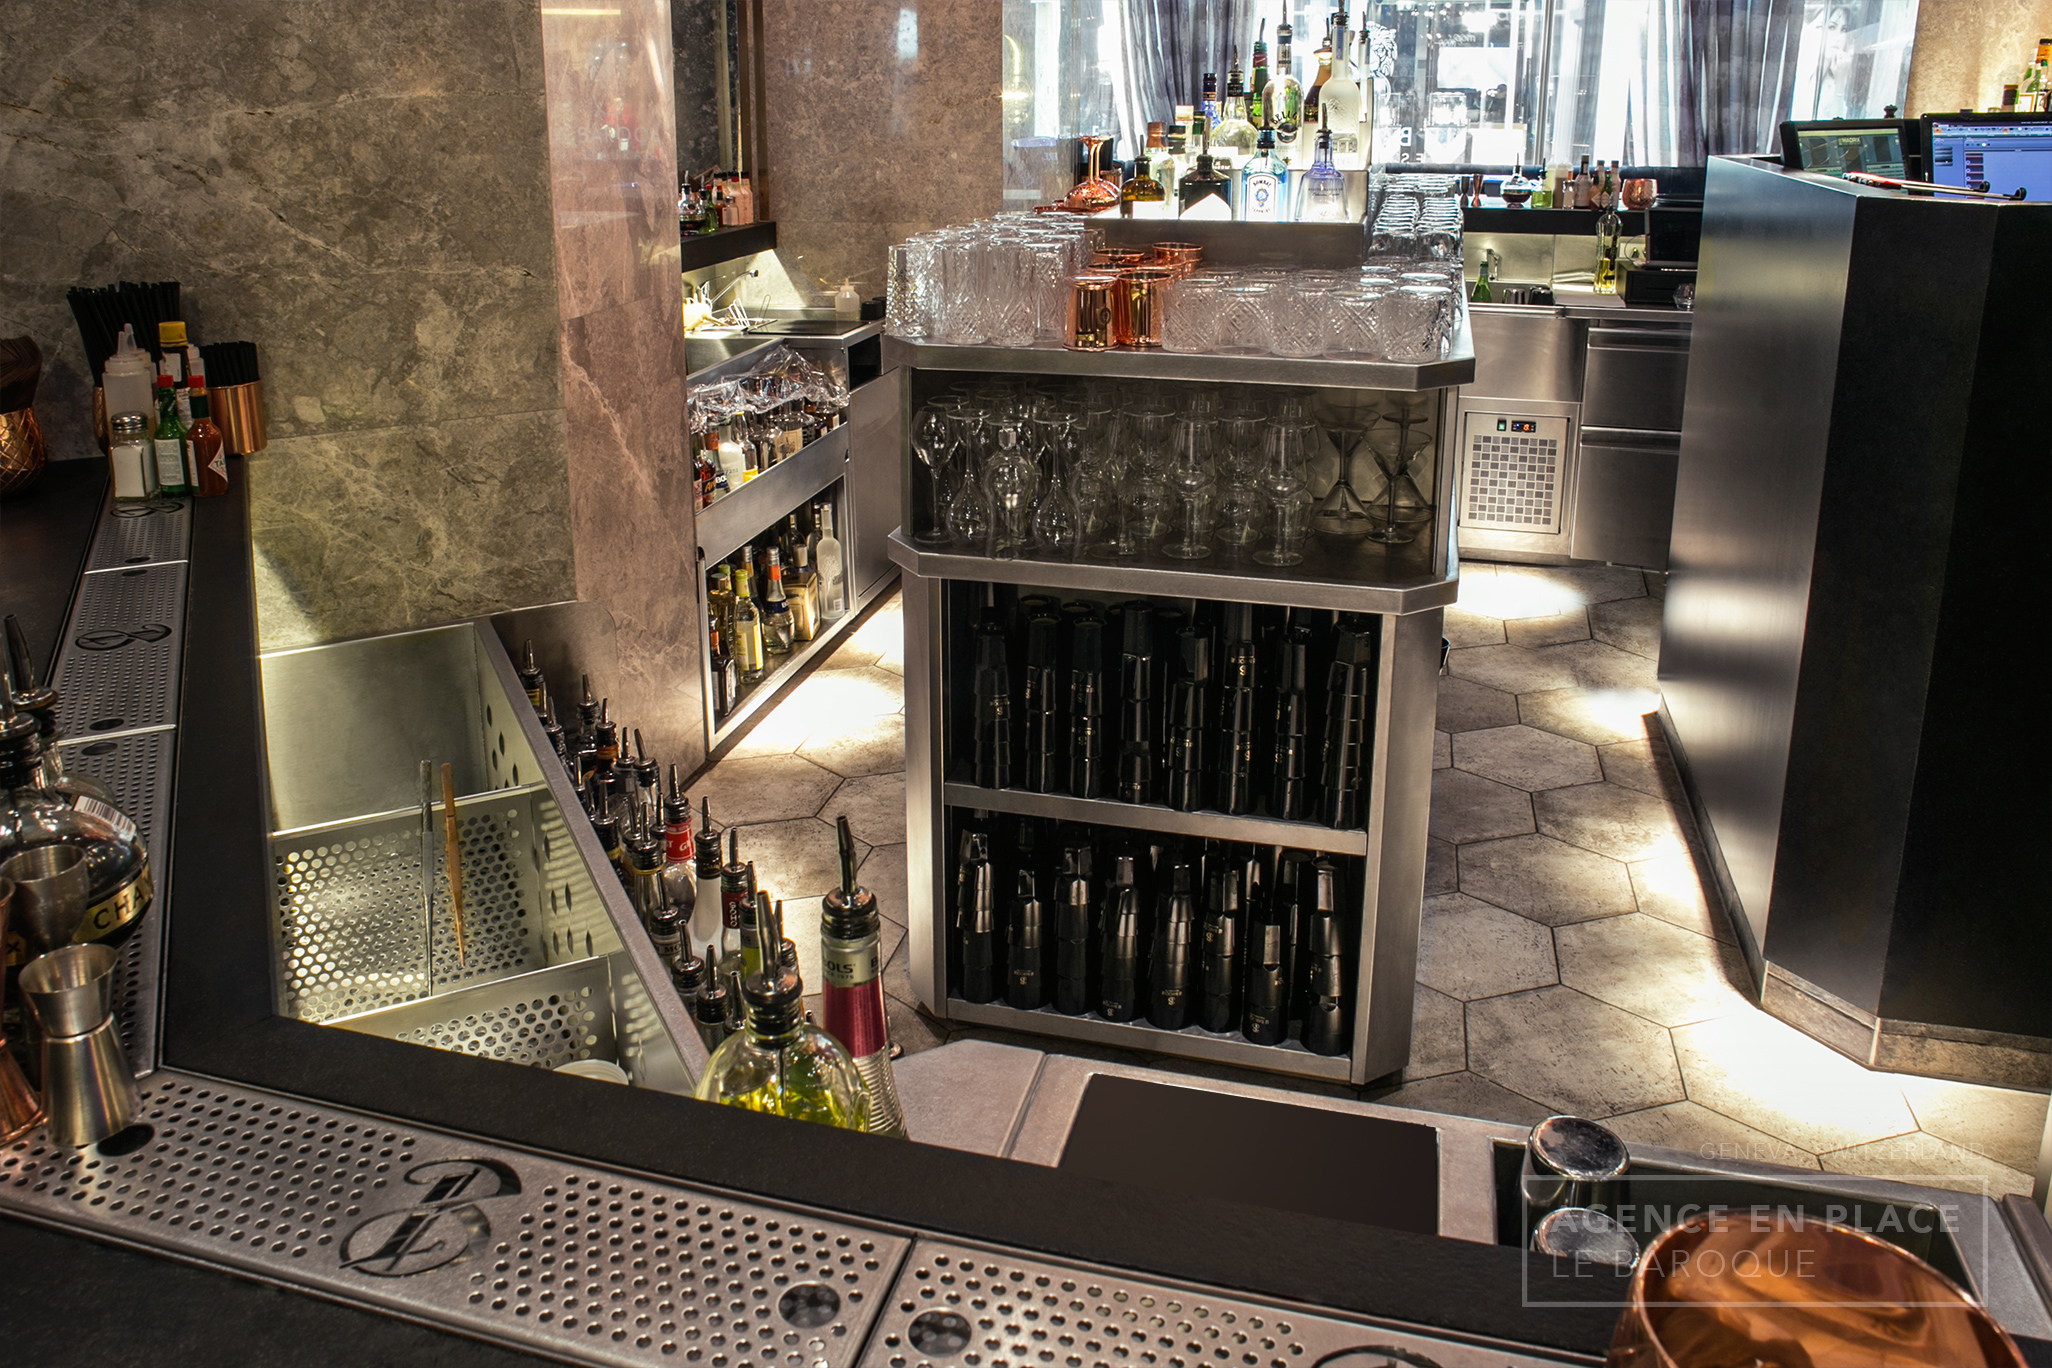 baroque-agenceenplace-cocktailsbar006